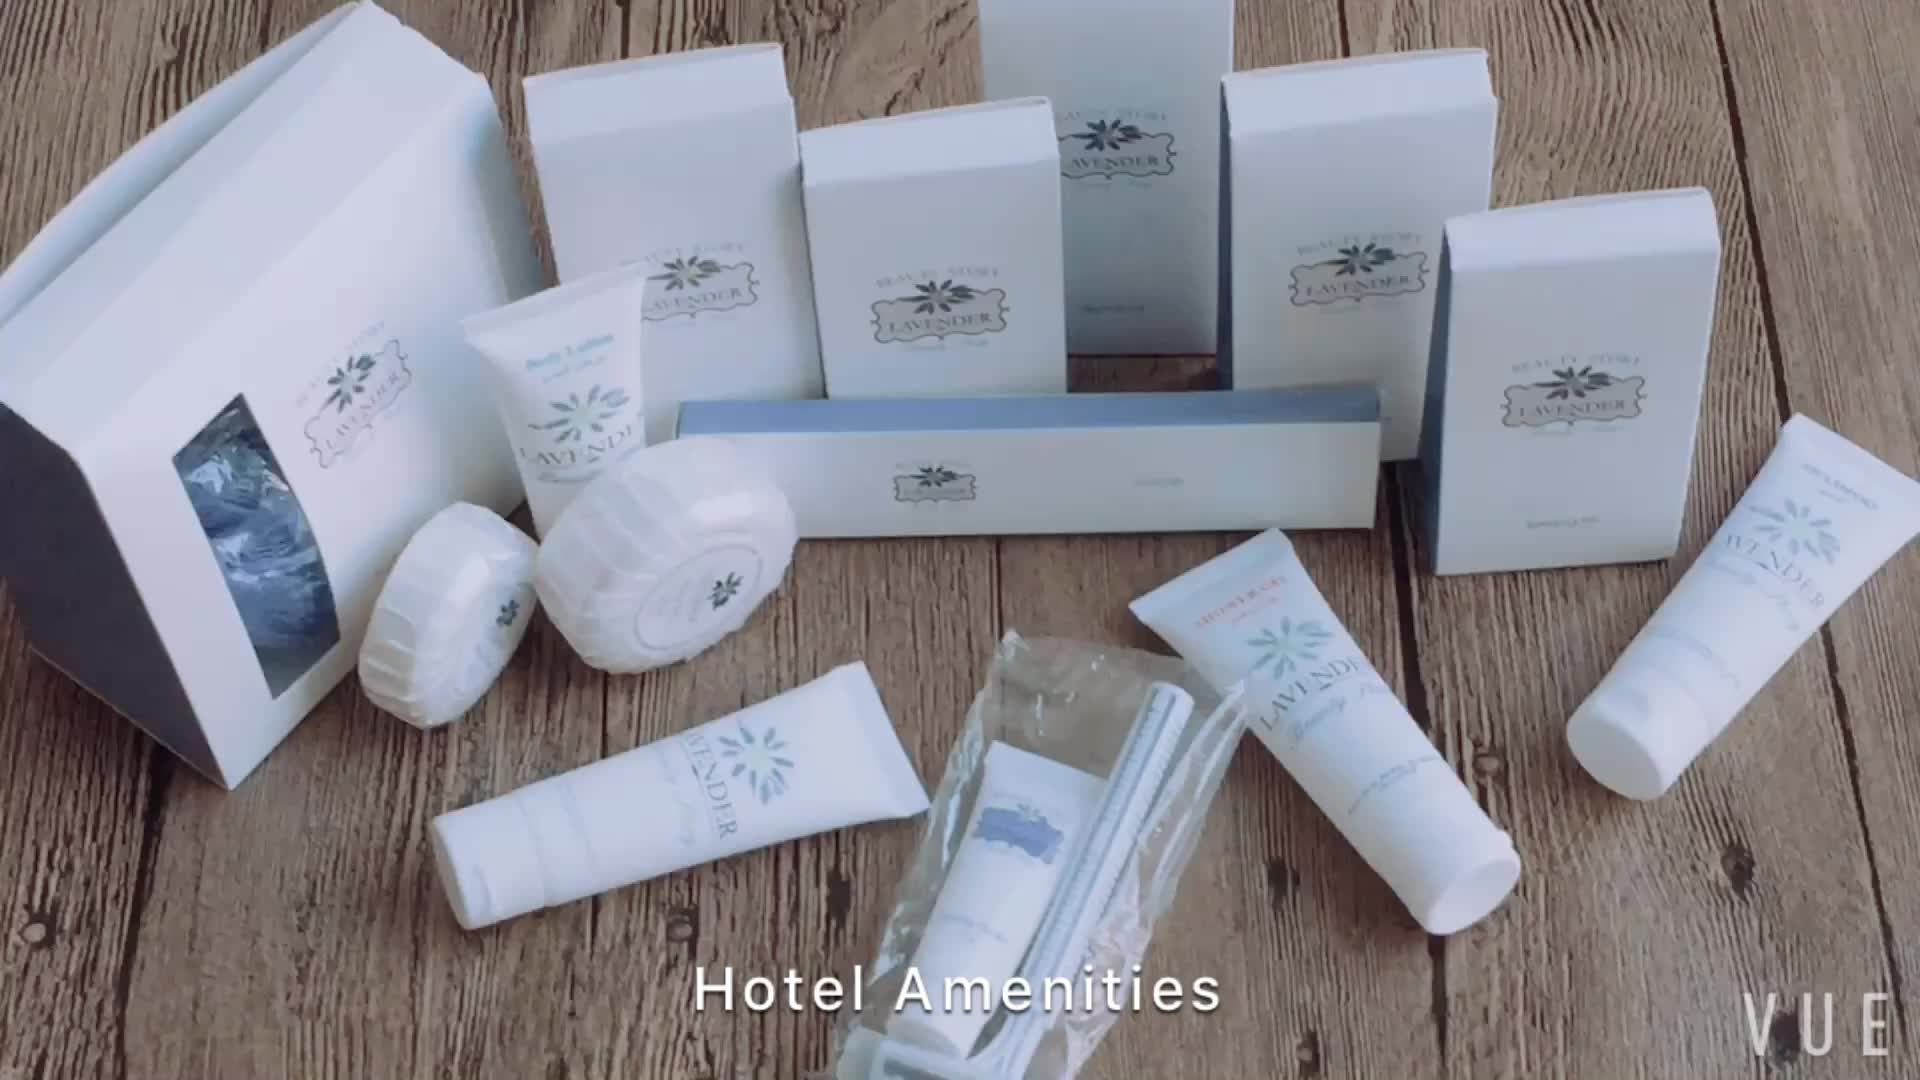 Wholesale Cosmetic Amenities Set For Hotel